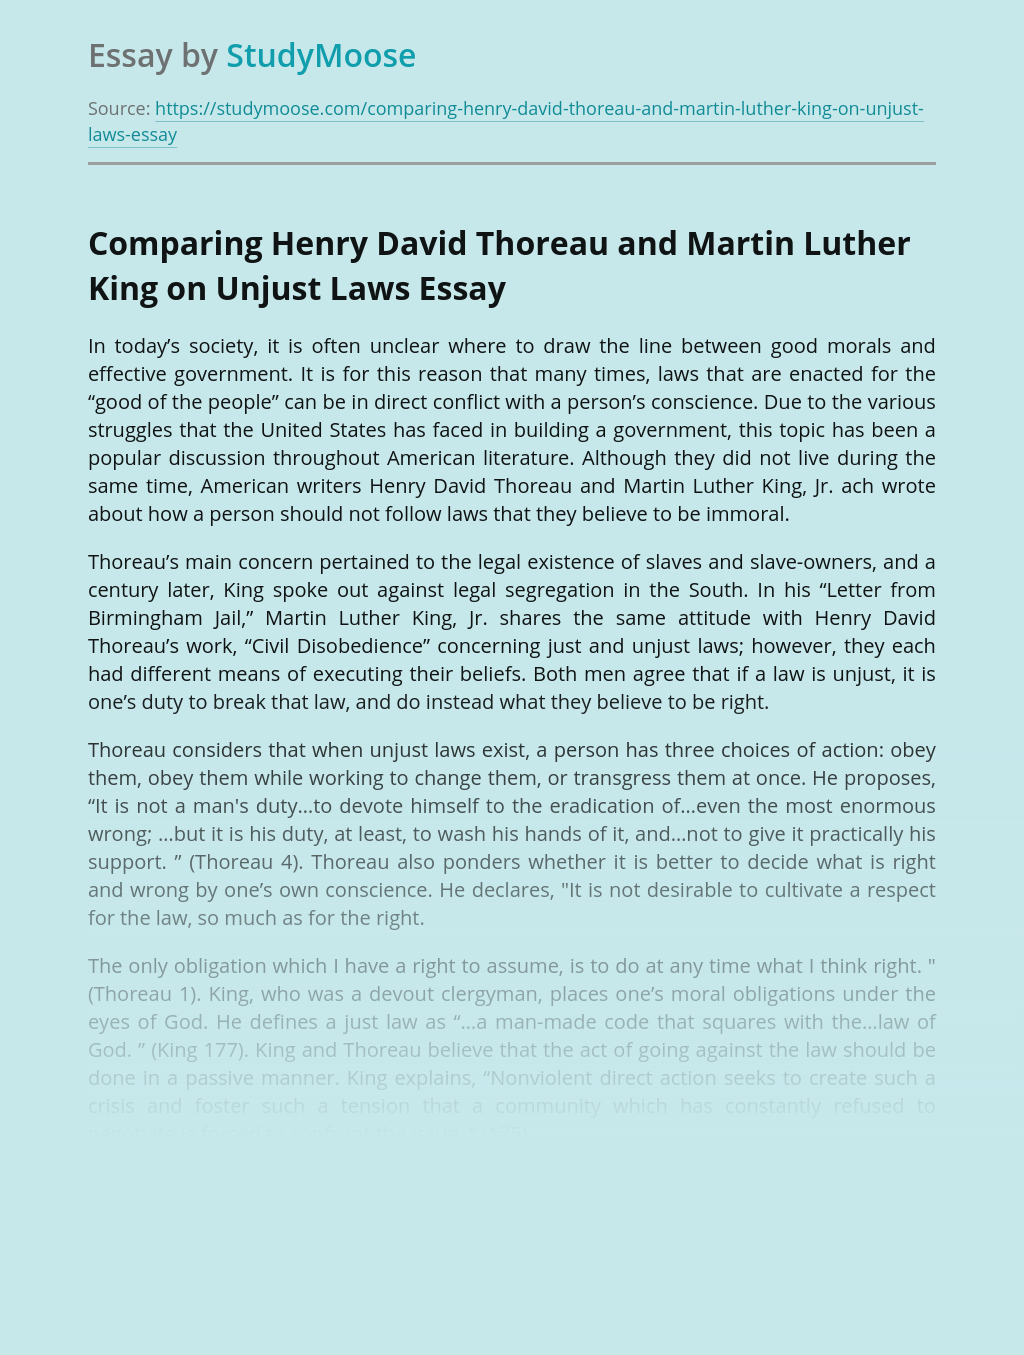 Comparing Henry David Thoreau and Martin Luther King on Unjust Laws